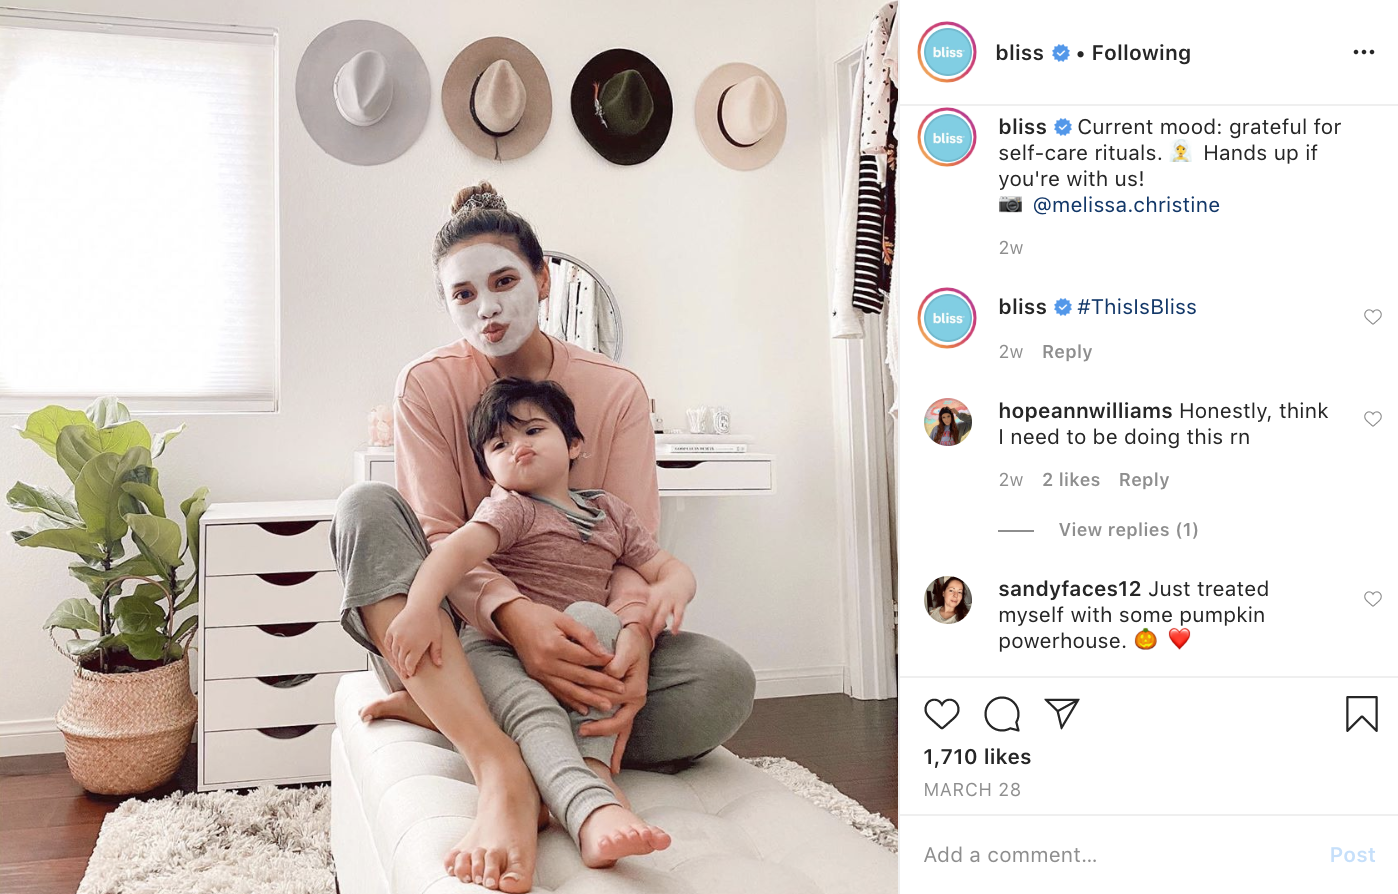 Customer photos being featured on Bliss social accounts and paired with self-care messaging.